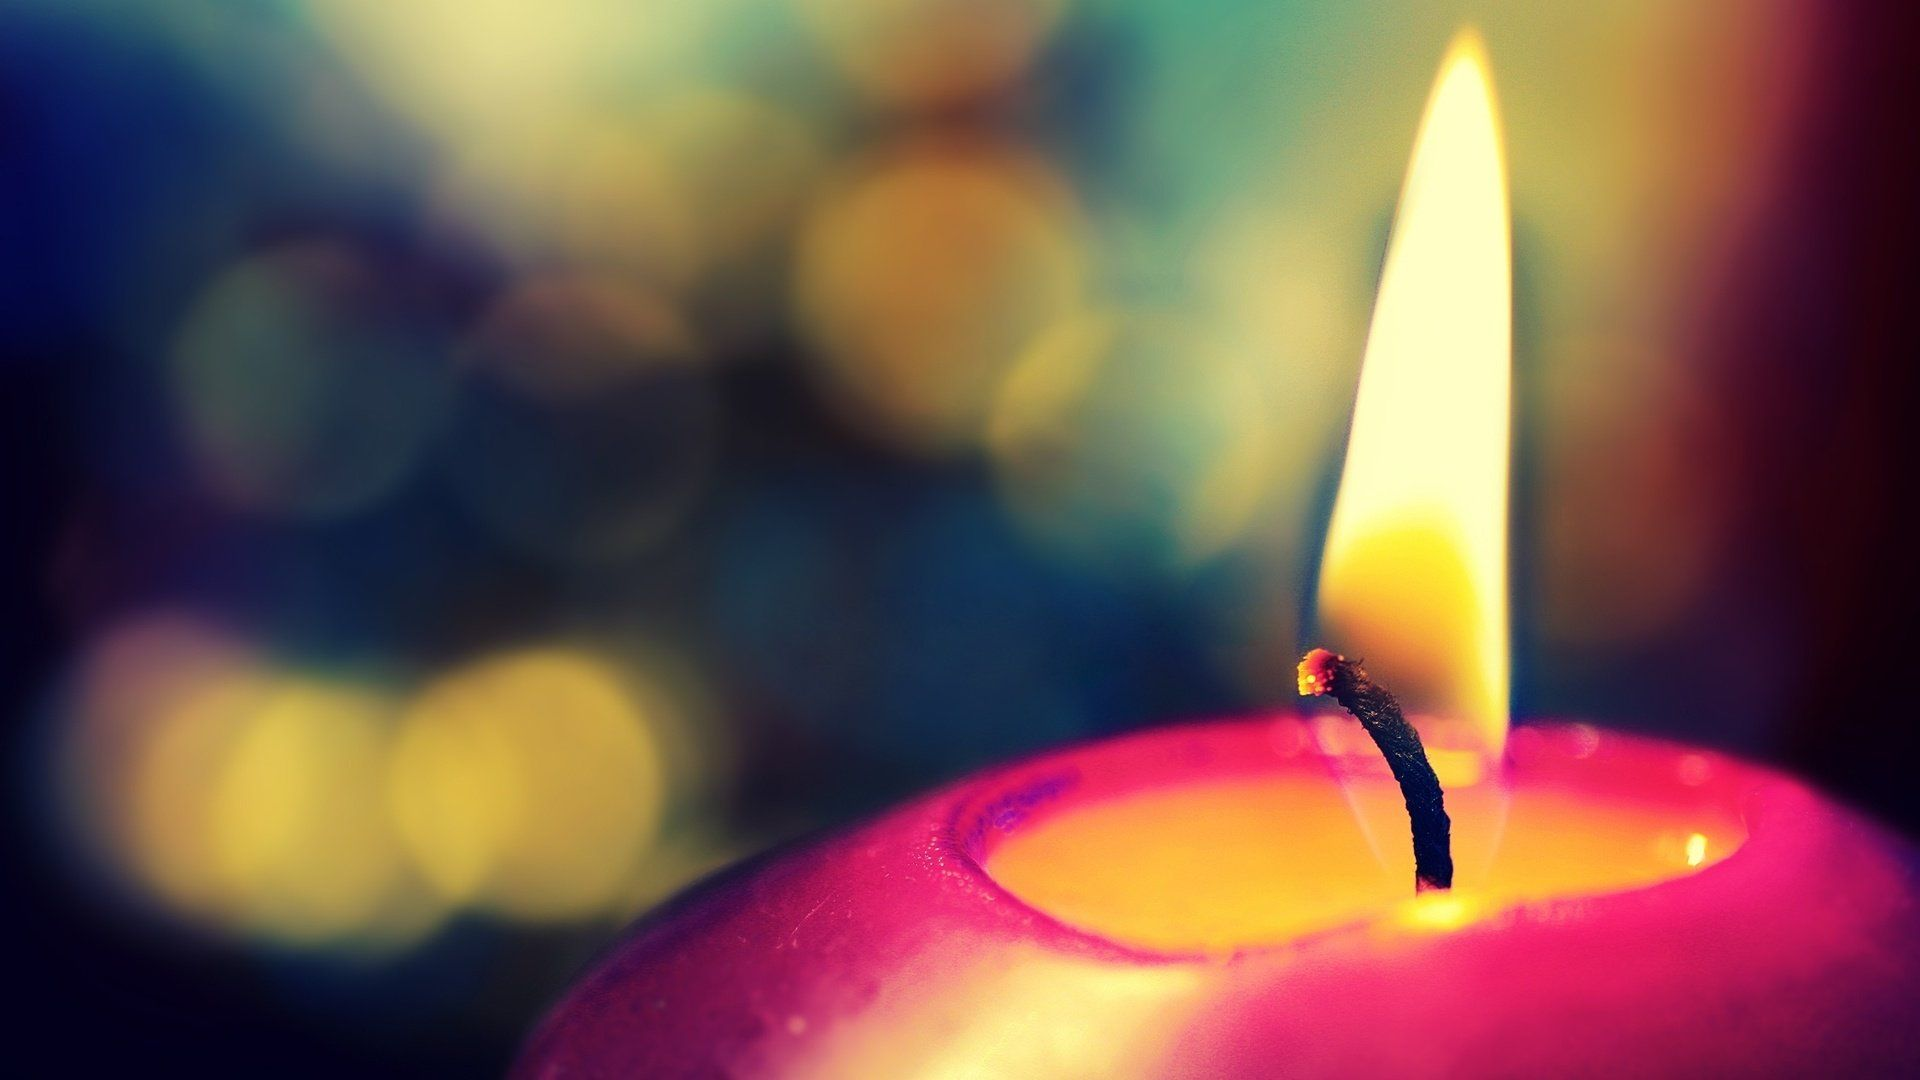 Candle good wallpaper